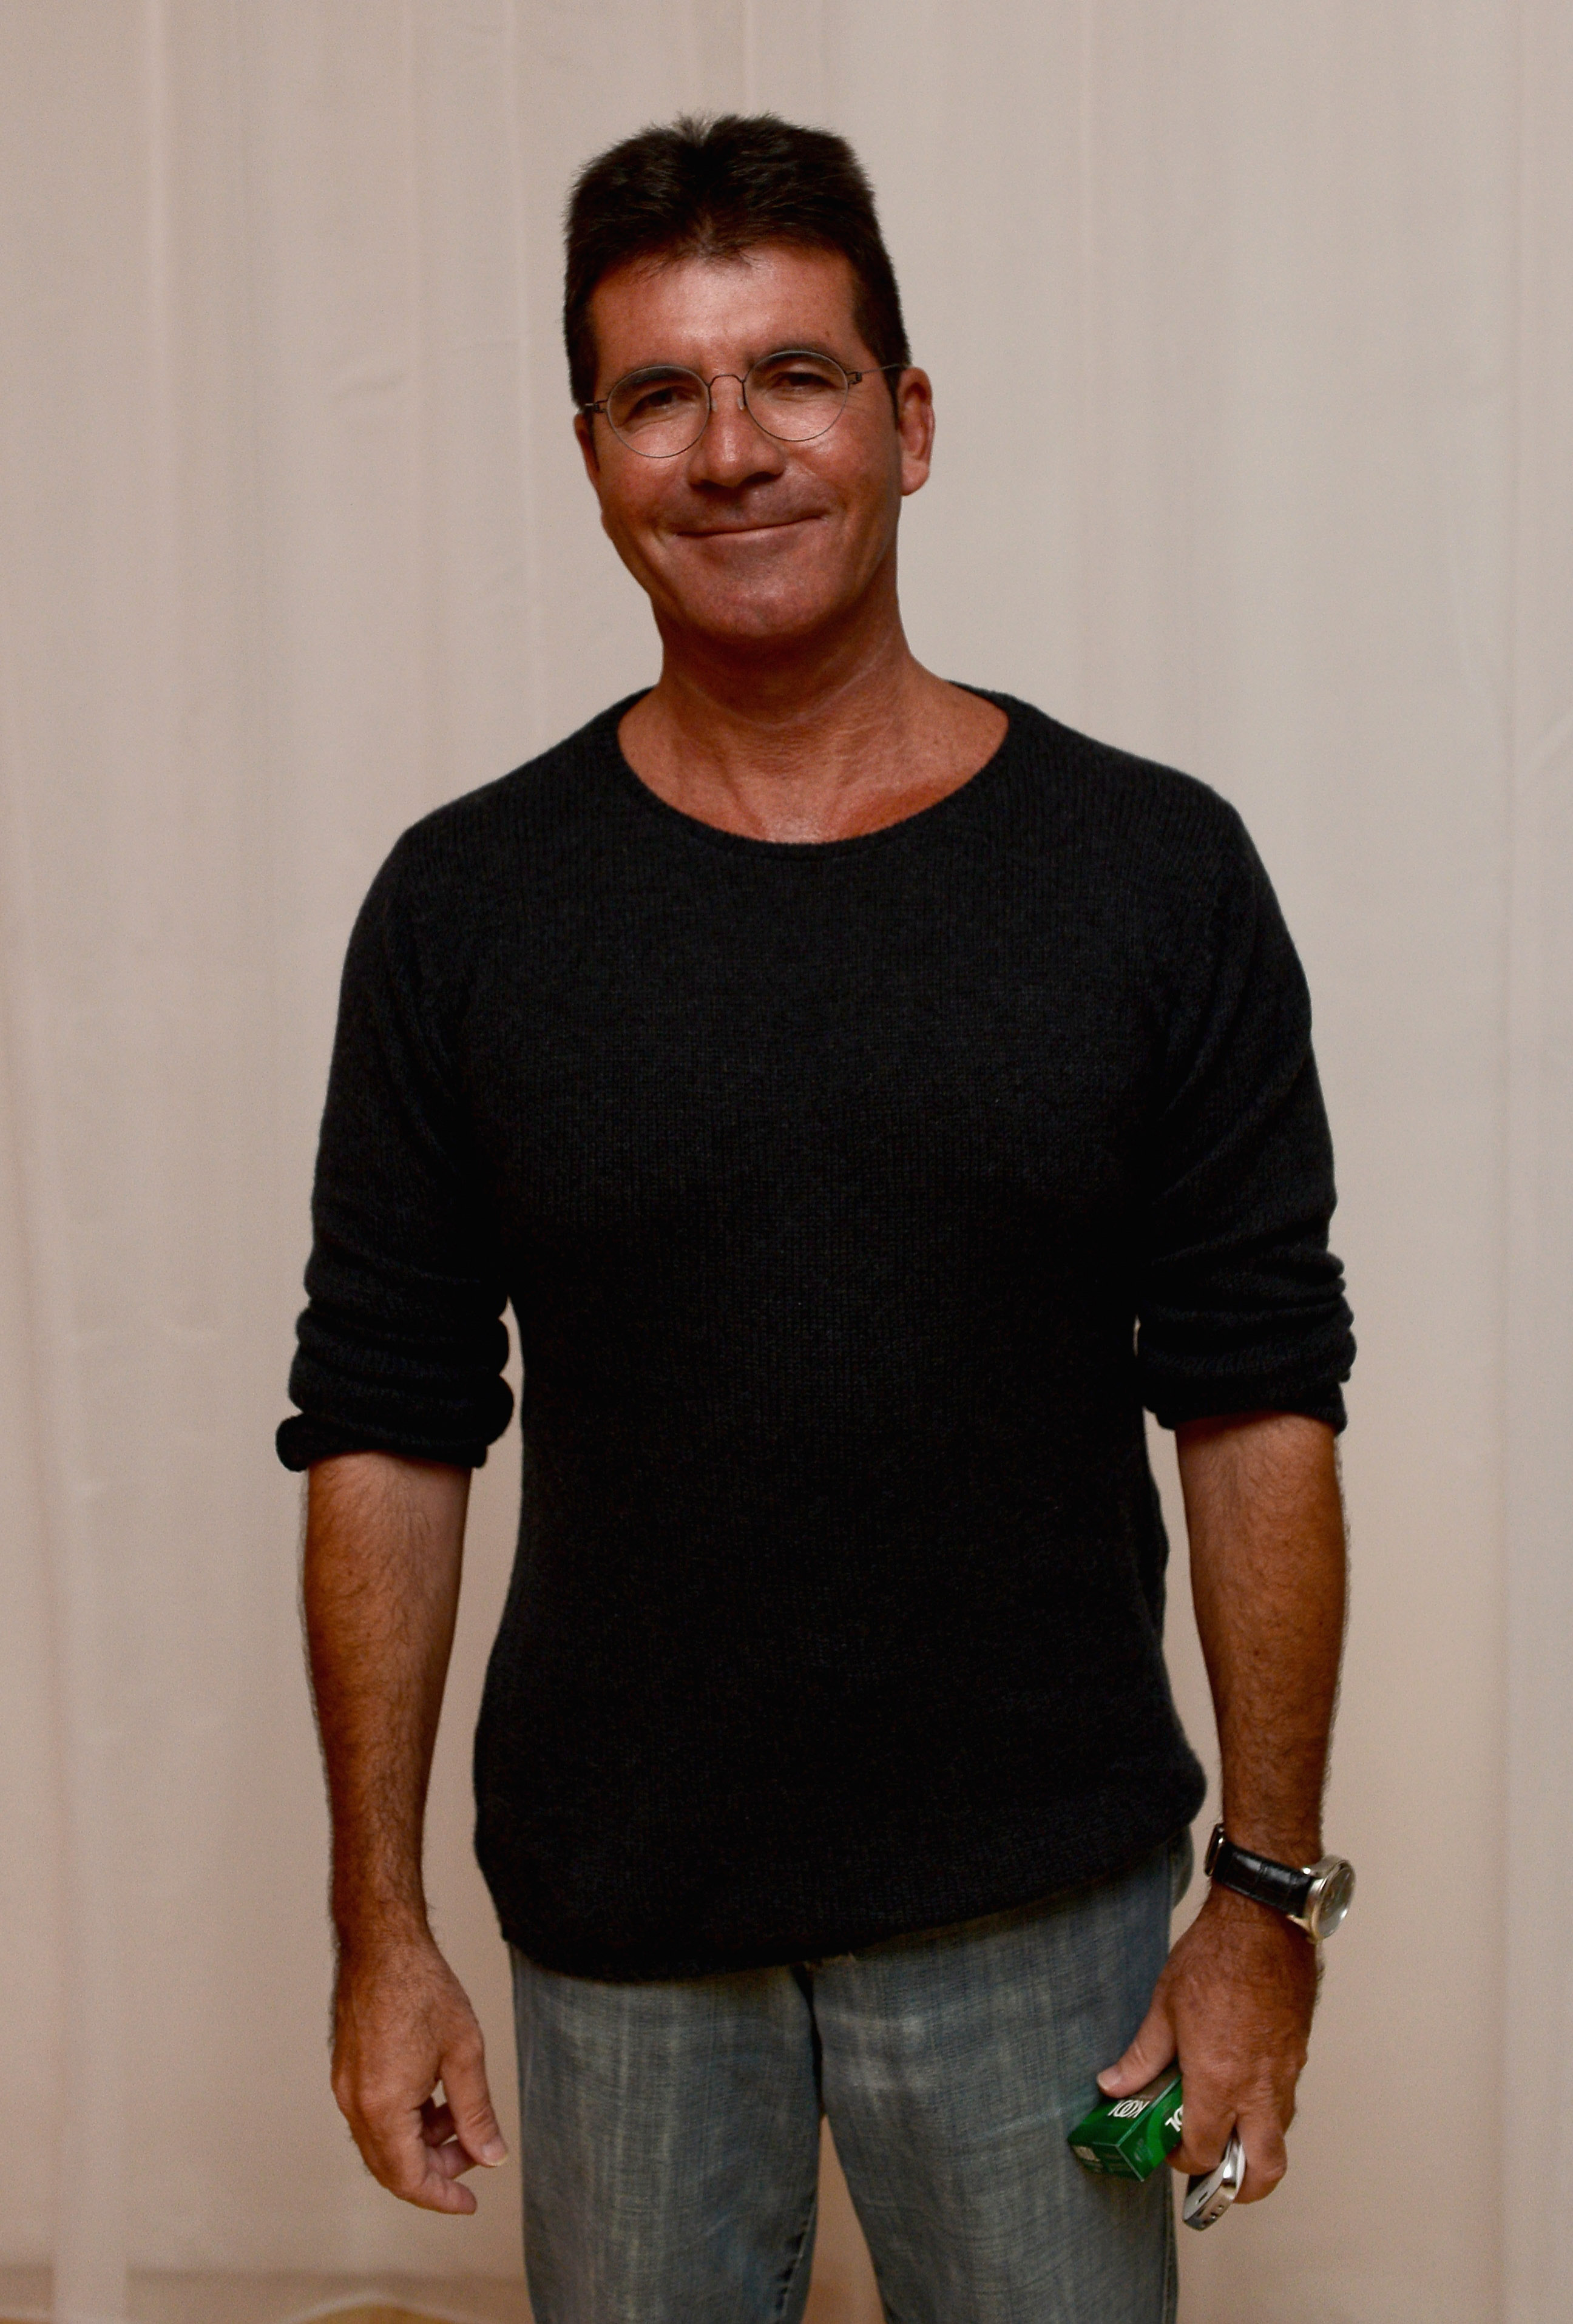 Simon Cowell is thinking about naming his son after himself (Picture: Ian Gavan/Getty Images for Sony Pictures)